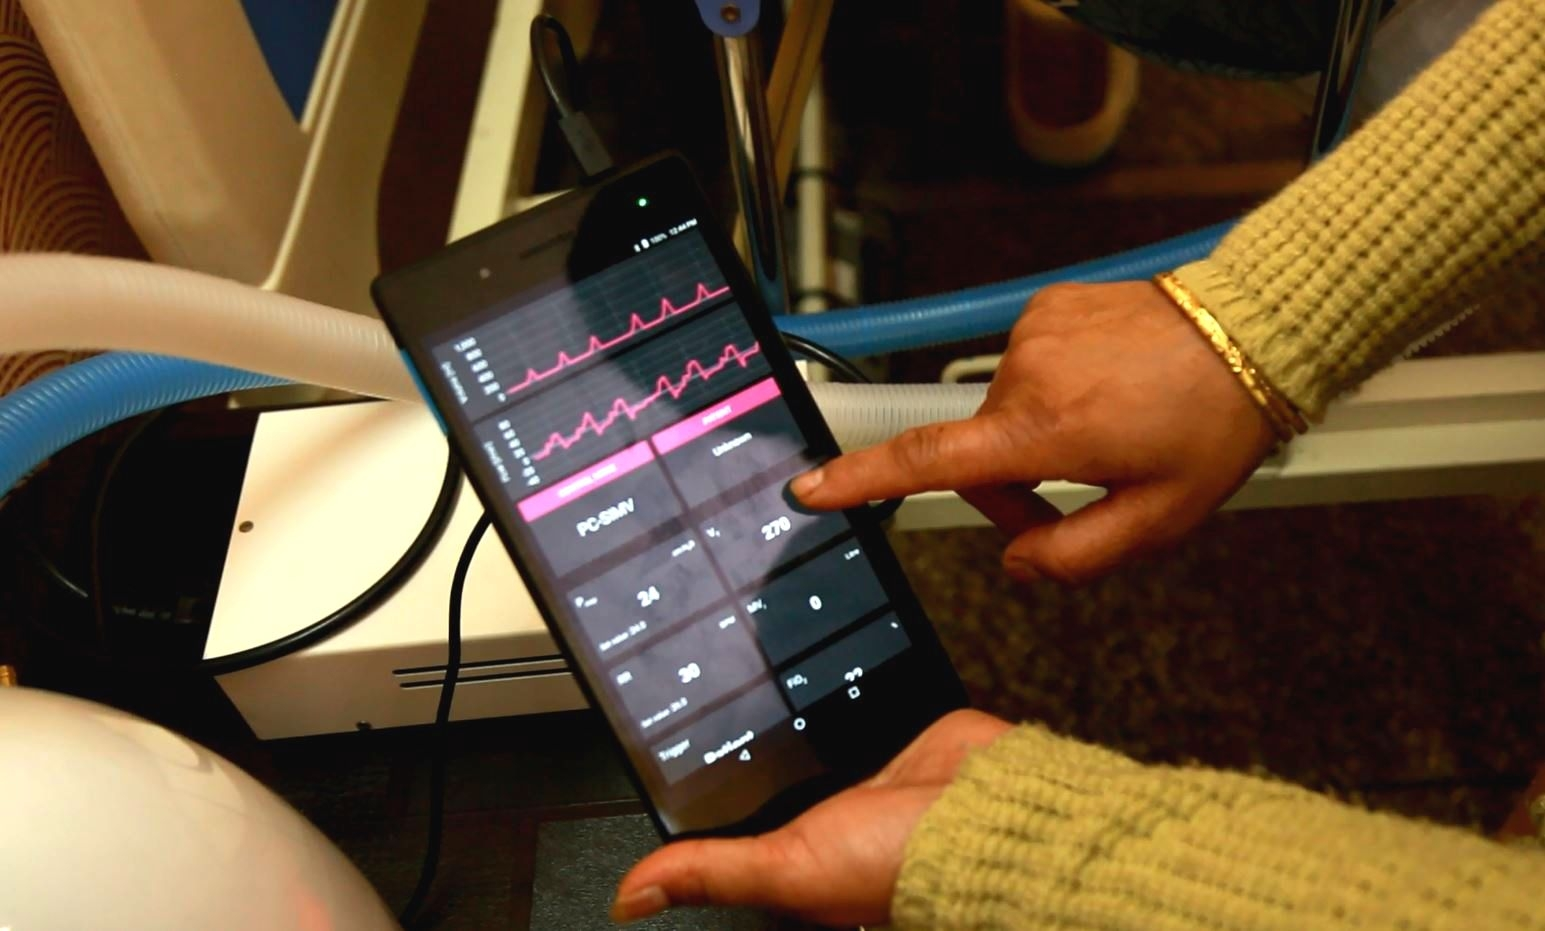 Health in Your Hands: How Your Phones Double Up as Medical Devices